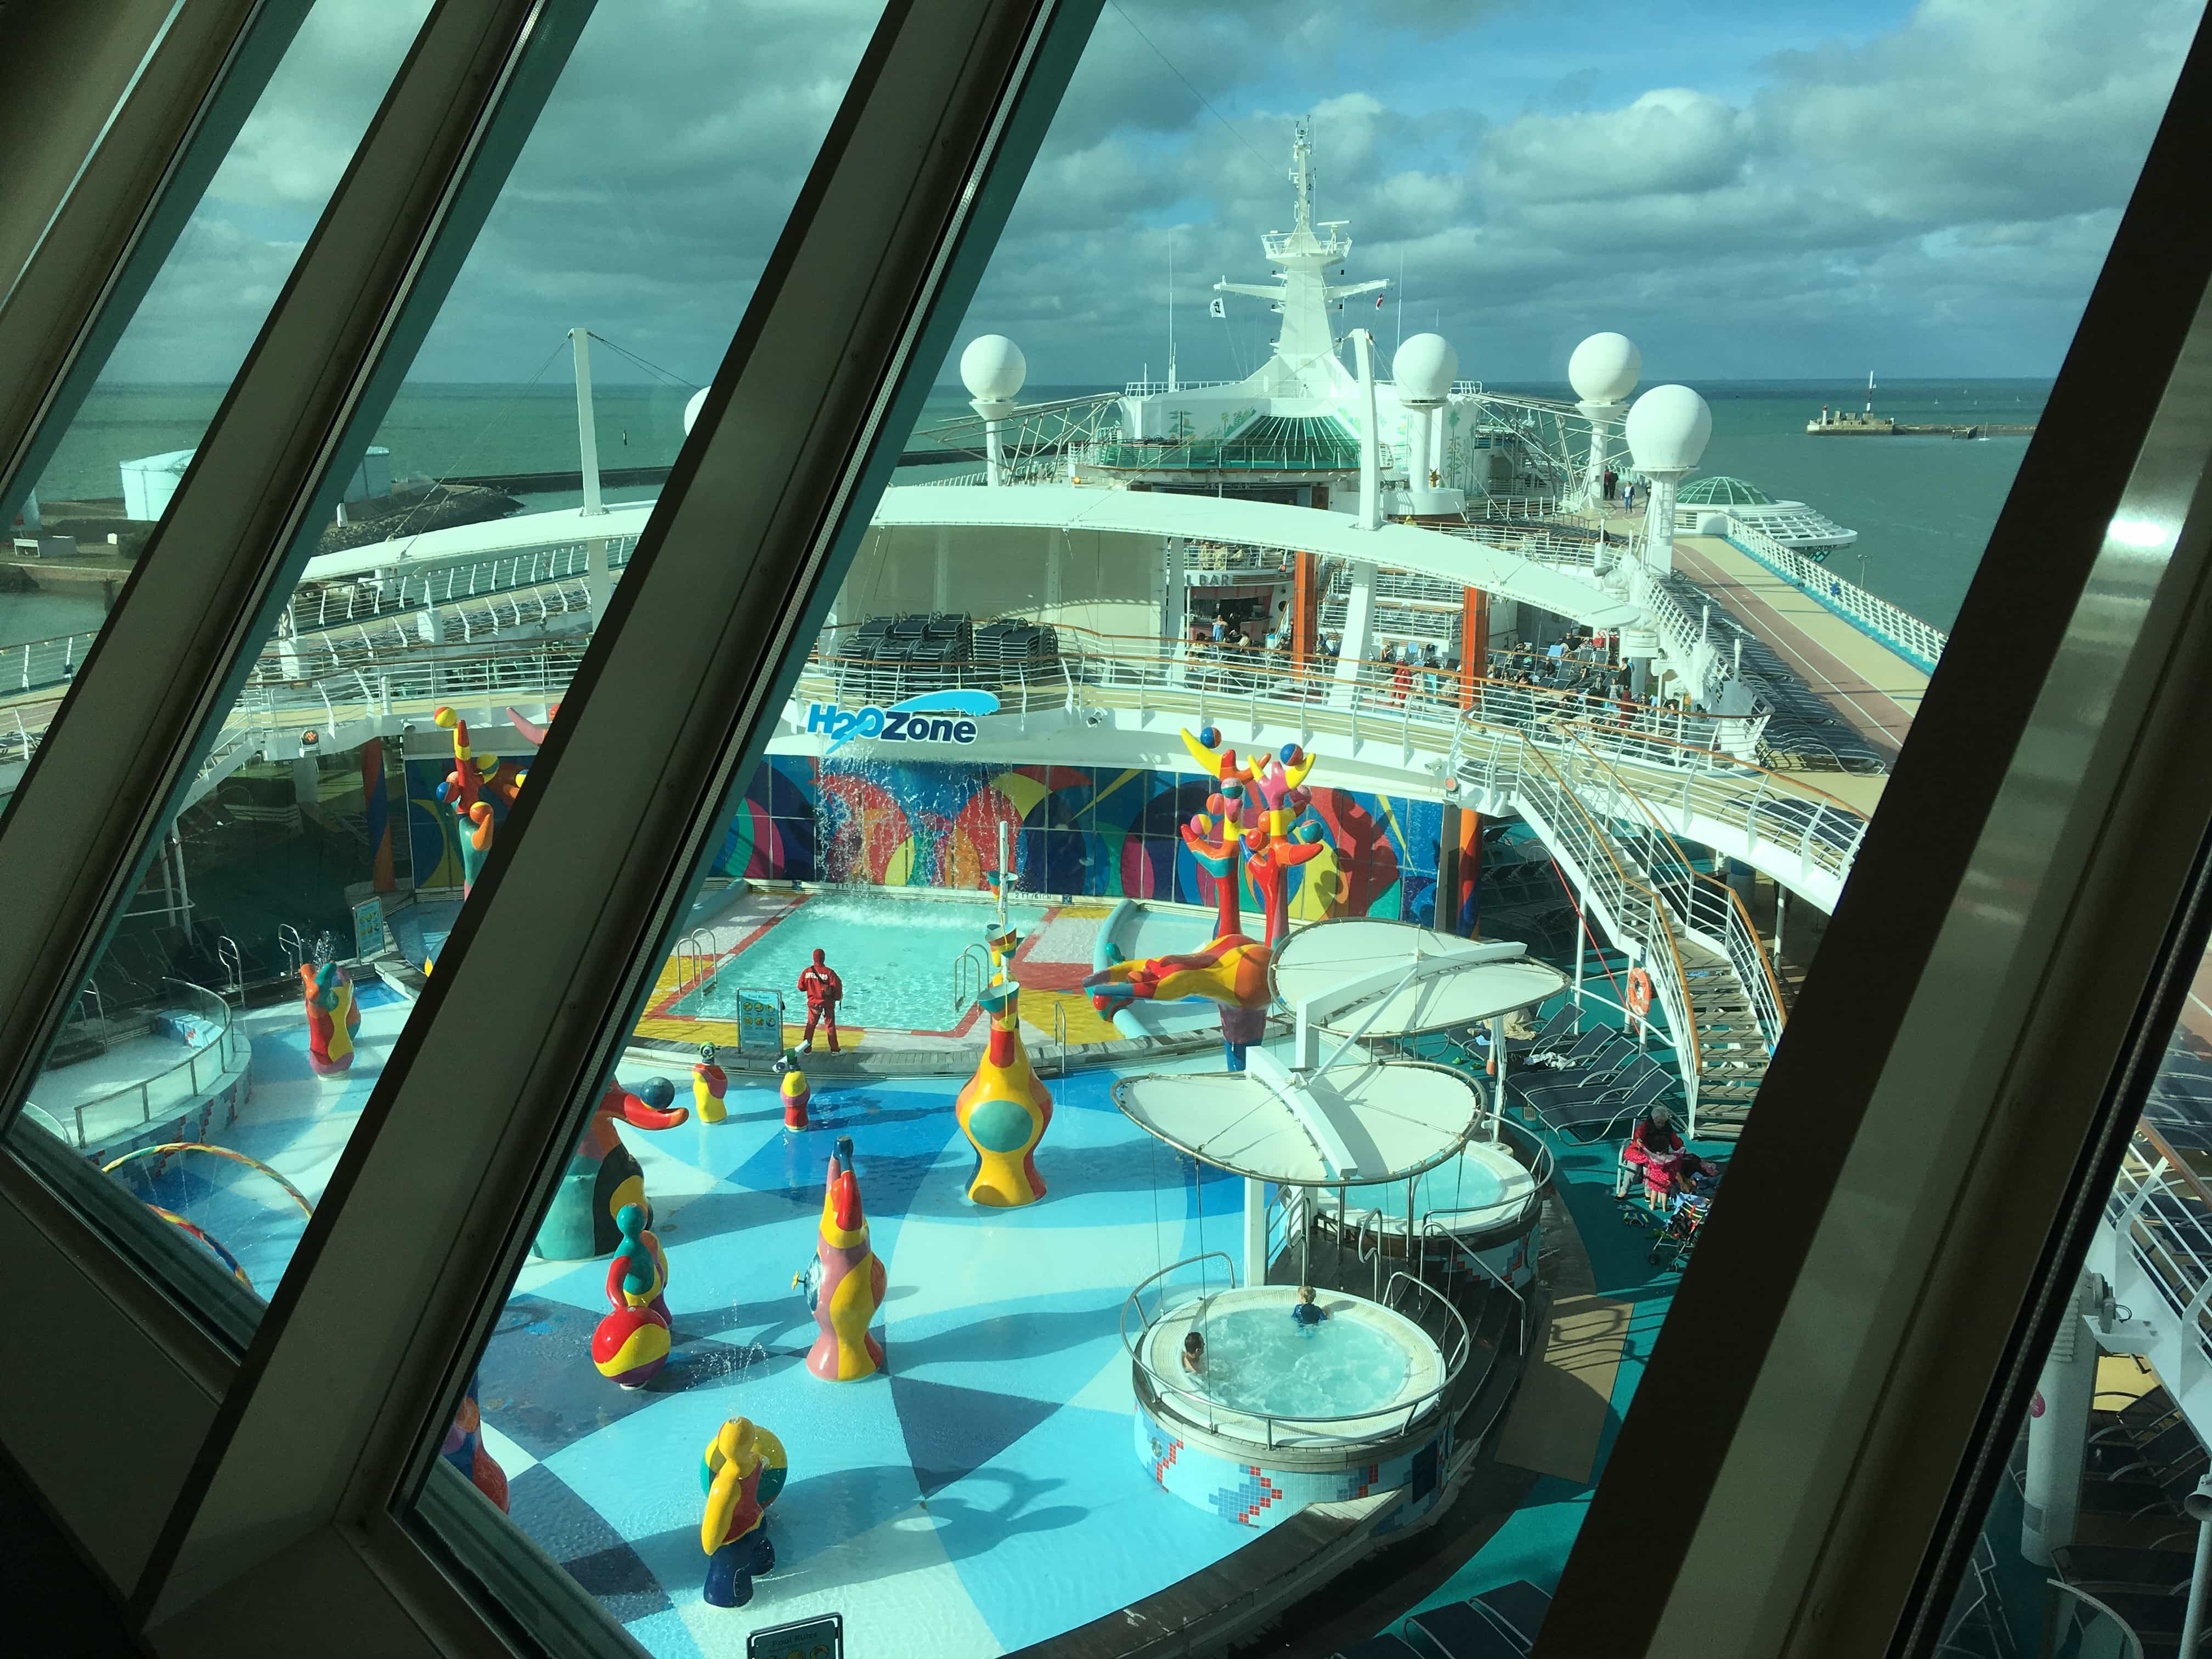 royal caribbean independence of the seas h20 zone view from olive and twist